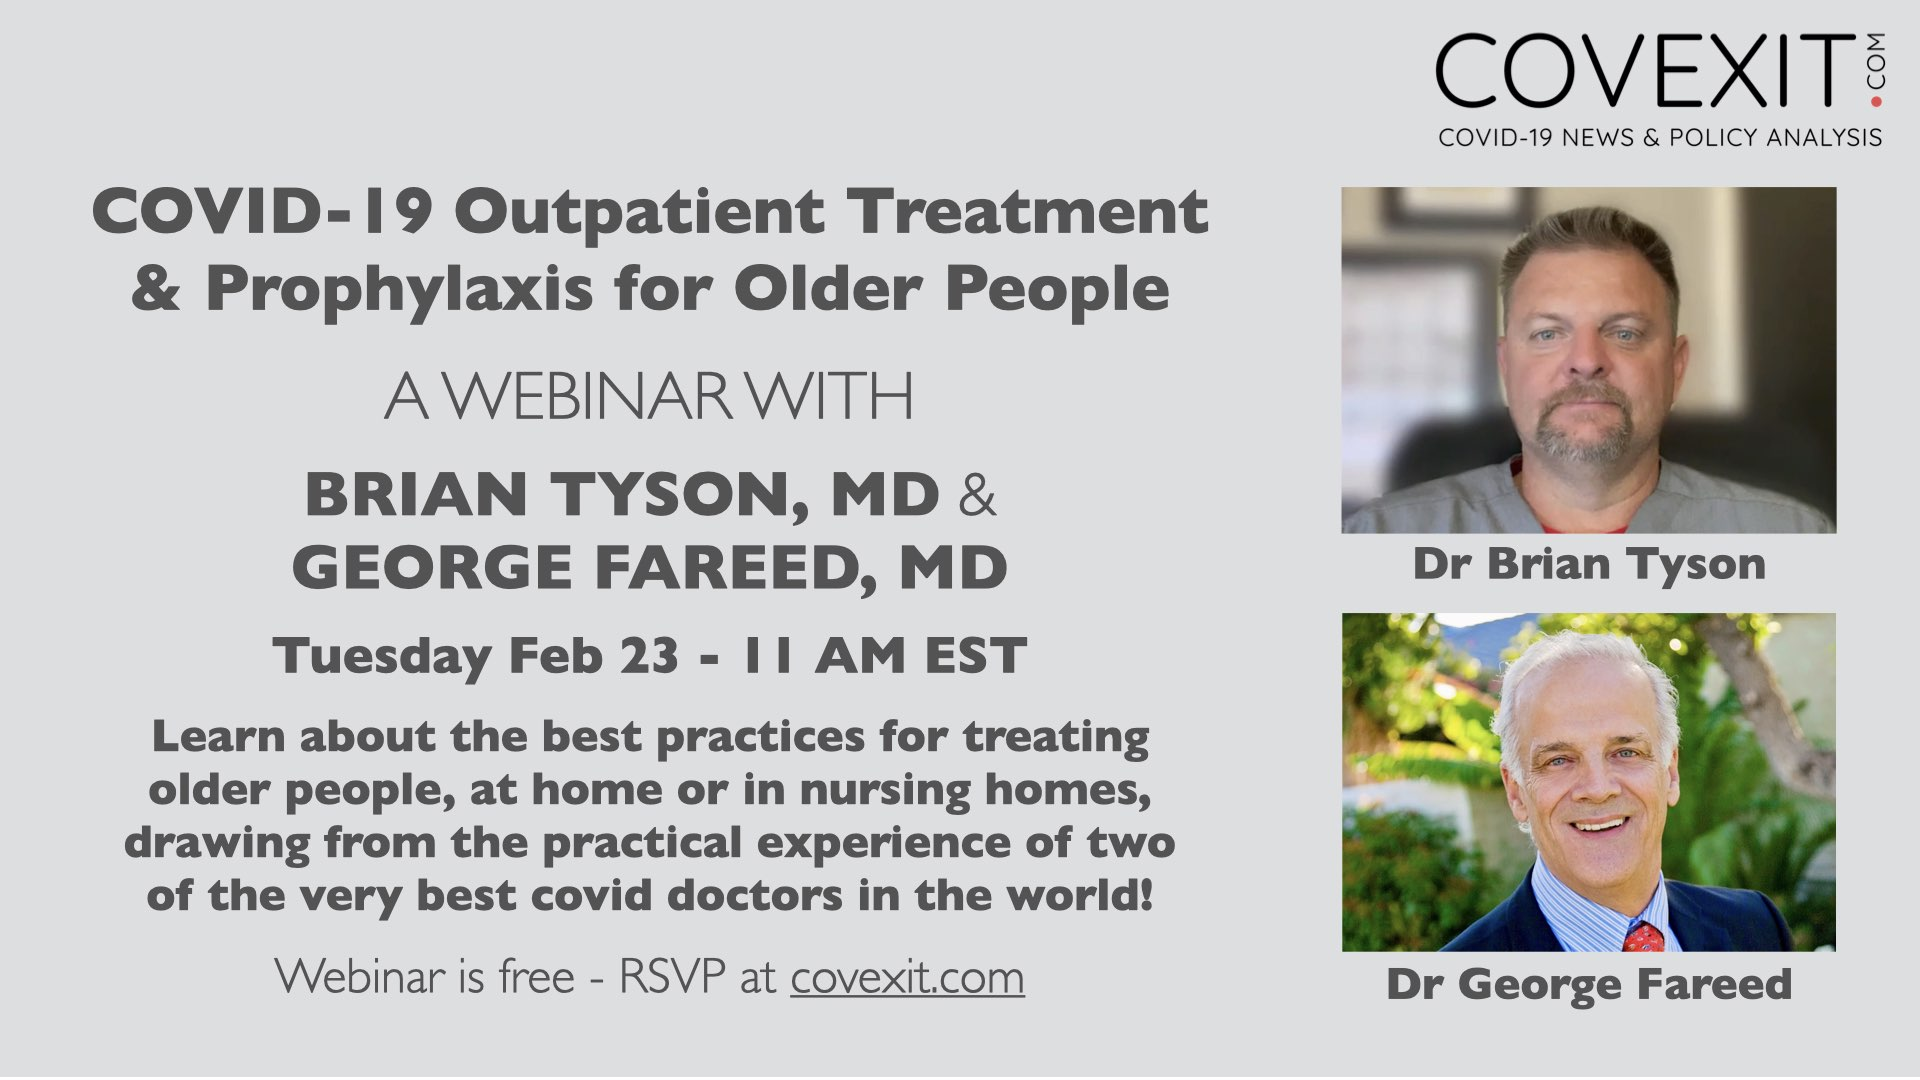 REGISTRATION - COVID-19 Outpatient Treatment & Prophylaxis for Older People